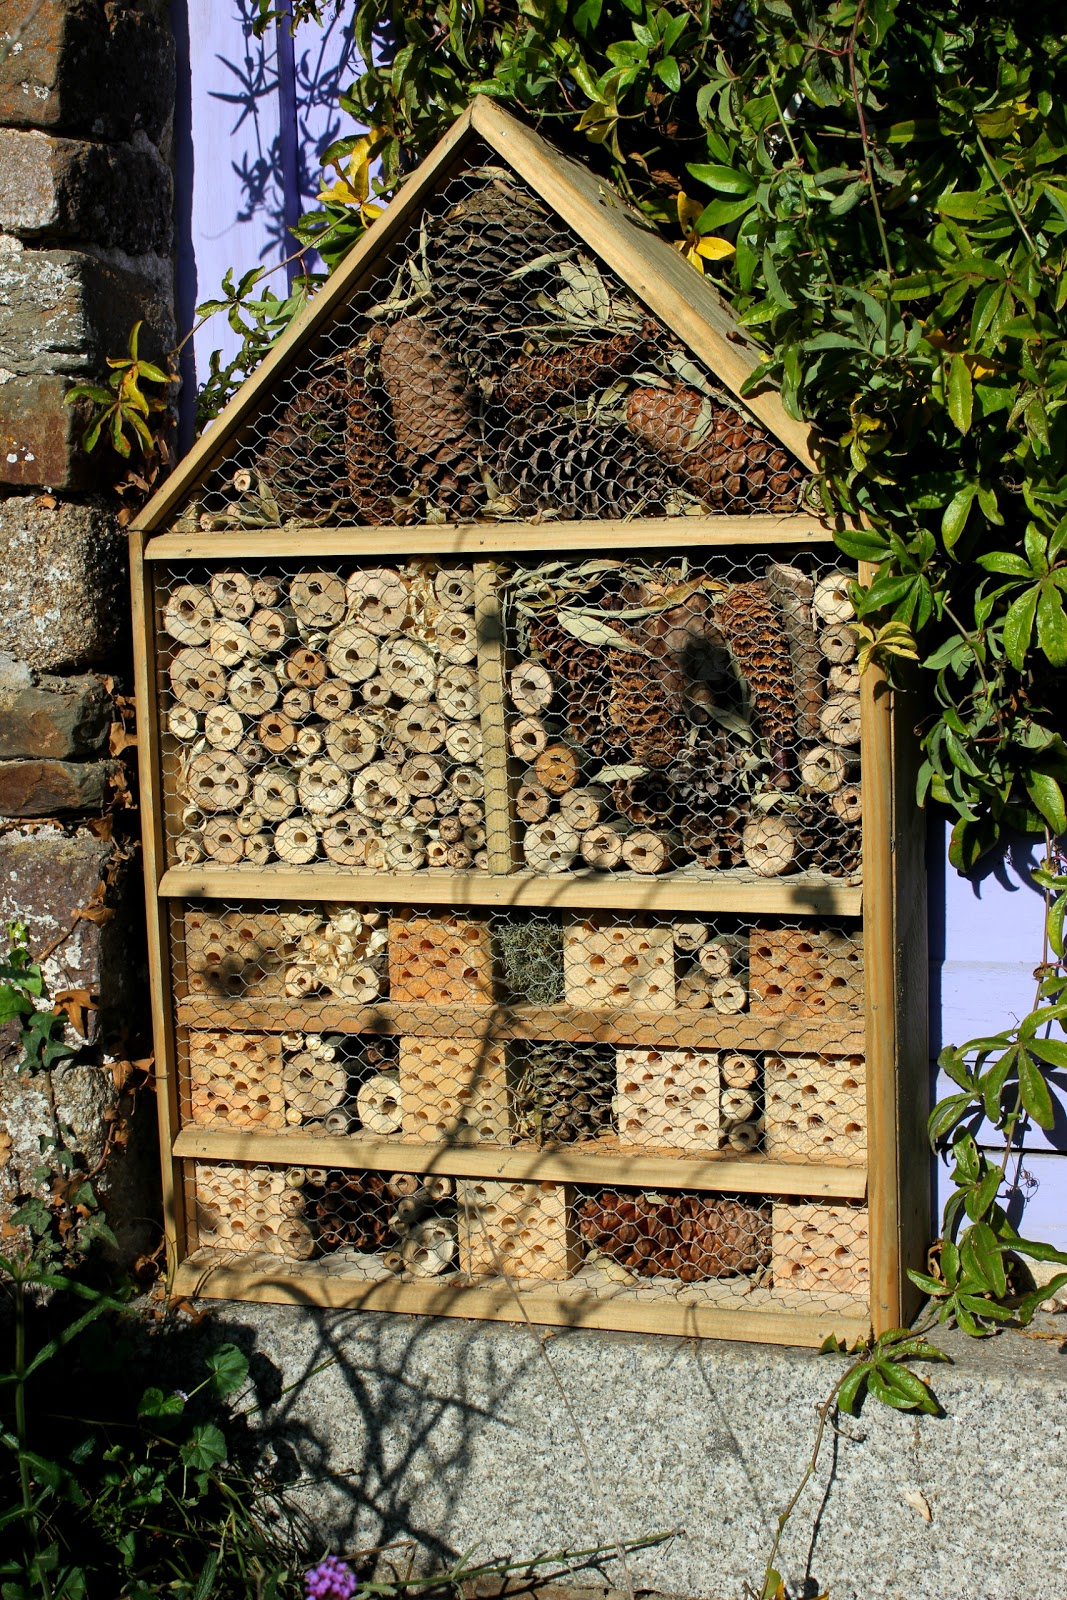 Home made repurposed wood luxury insect hotel or five for Diy hotel decor